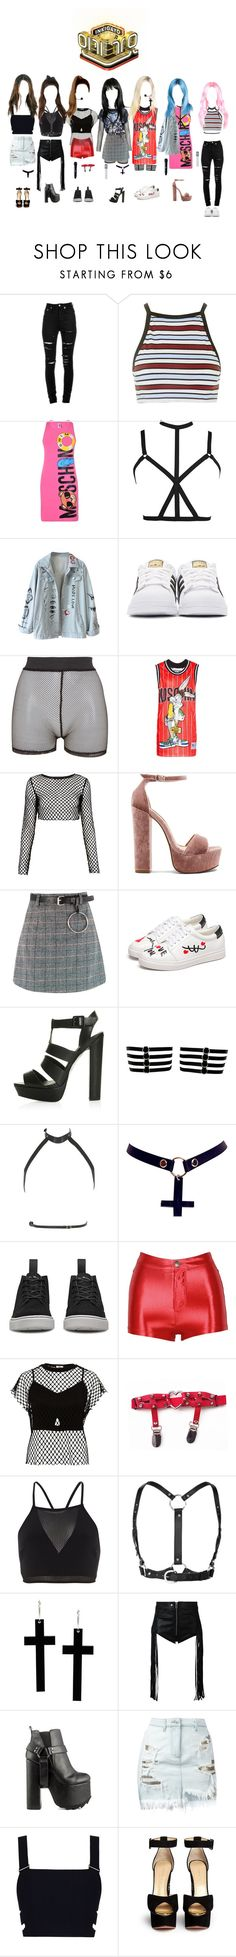 """""""《Debut Stage》Ice Kiss - Girl Power @인기가요 Inkigayo 20170723"""" by official-icekiss ❤ liked on Polyvore featuring Yves Saint Laurent, Motel, Moschino, adidas Originals, Bitching & Junkfood, Steve Madden, Topshop, Zana Bayne, Chicnova Fashion and Dr. Martens"""